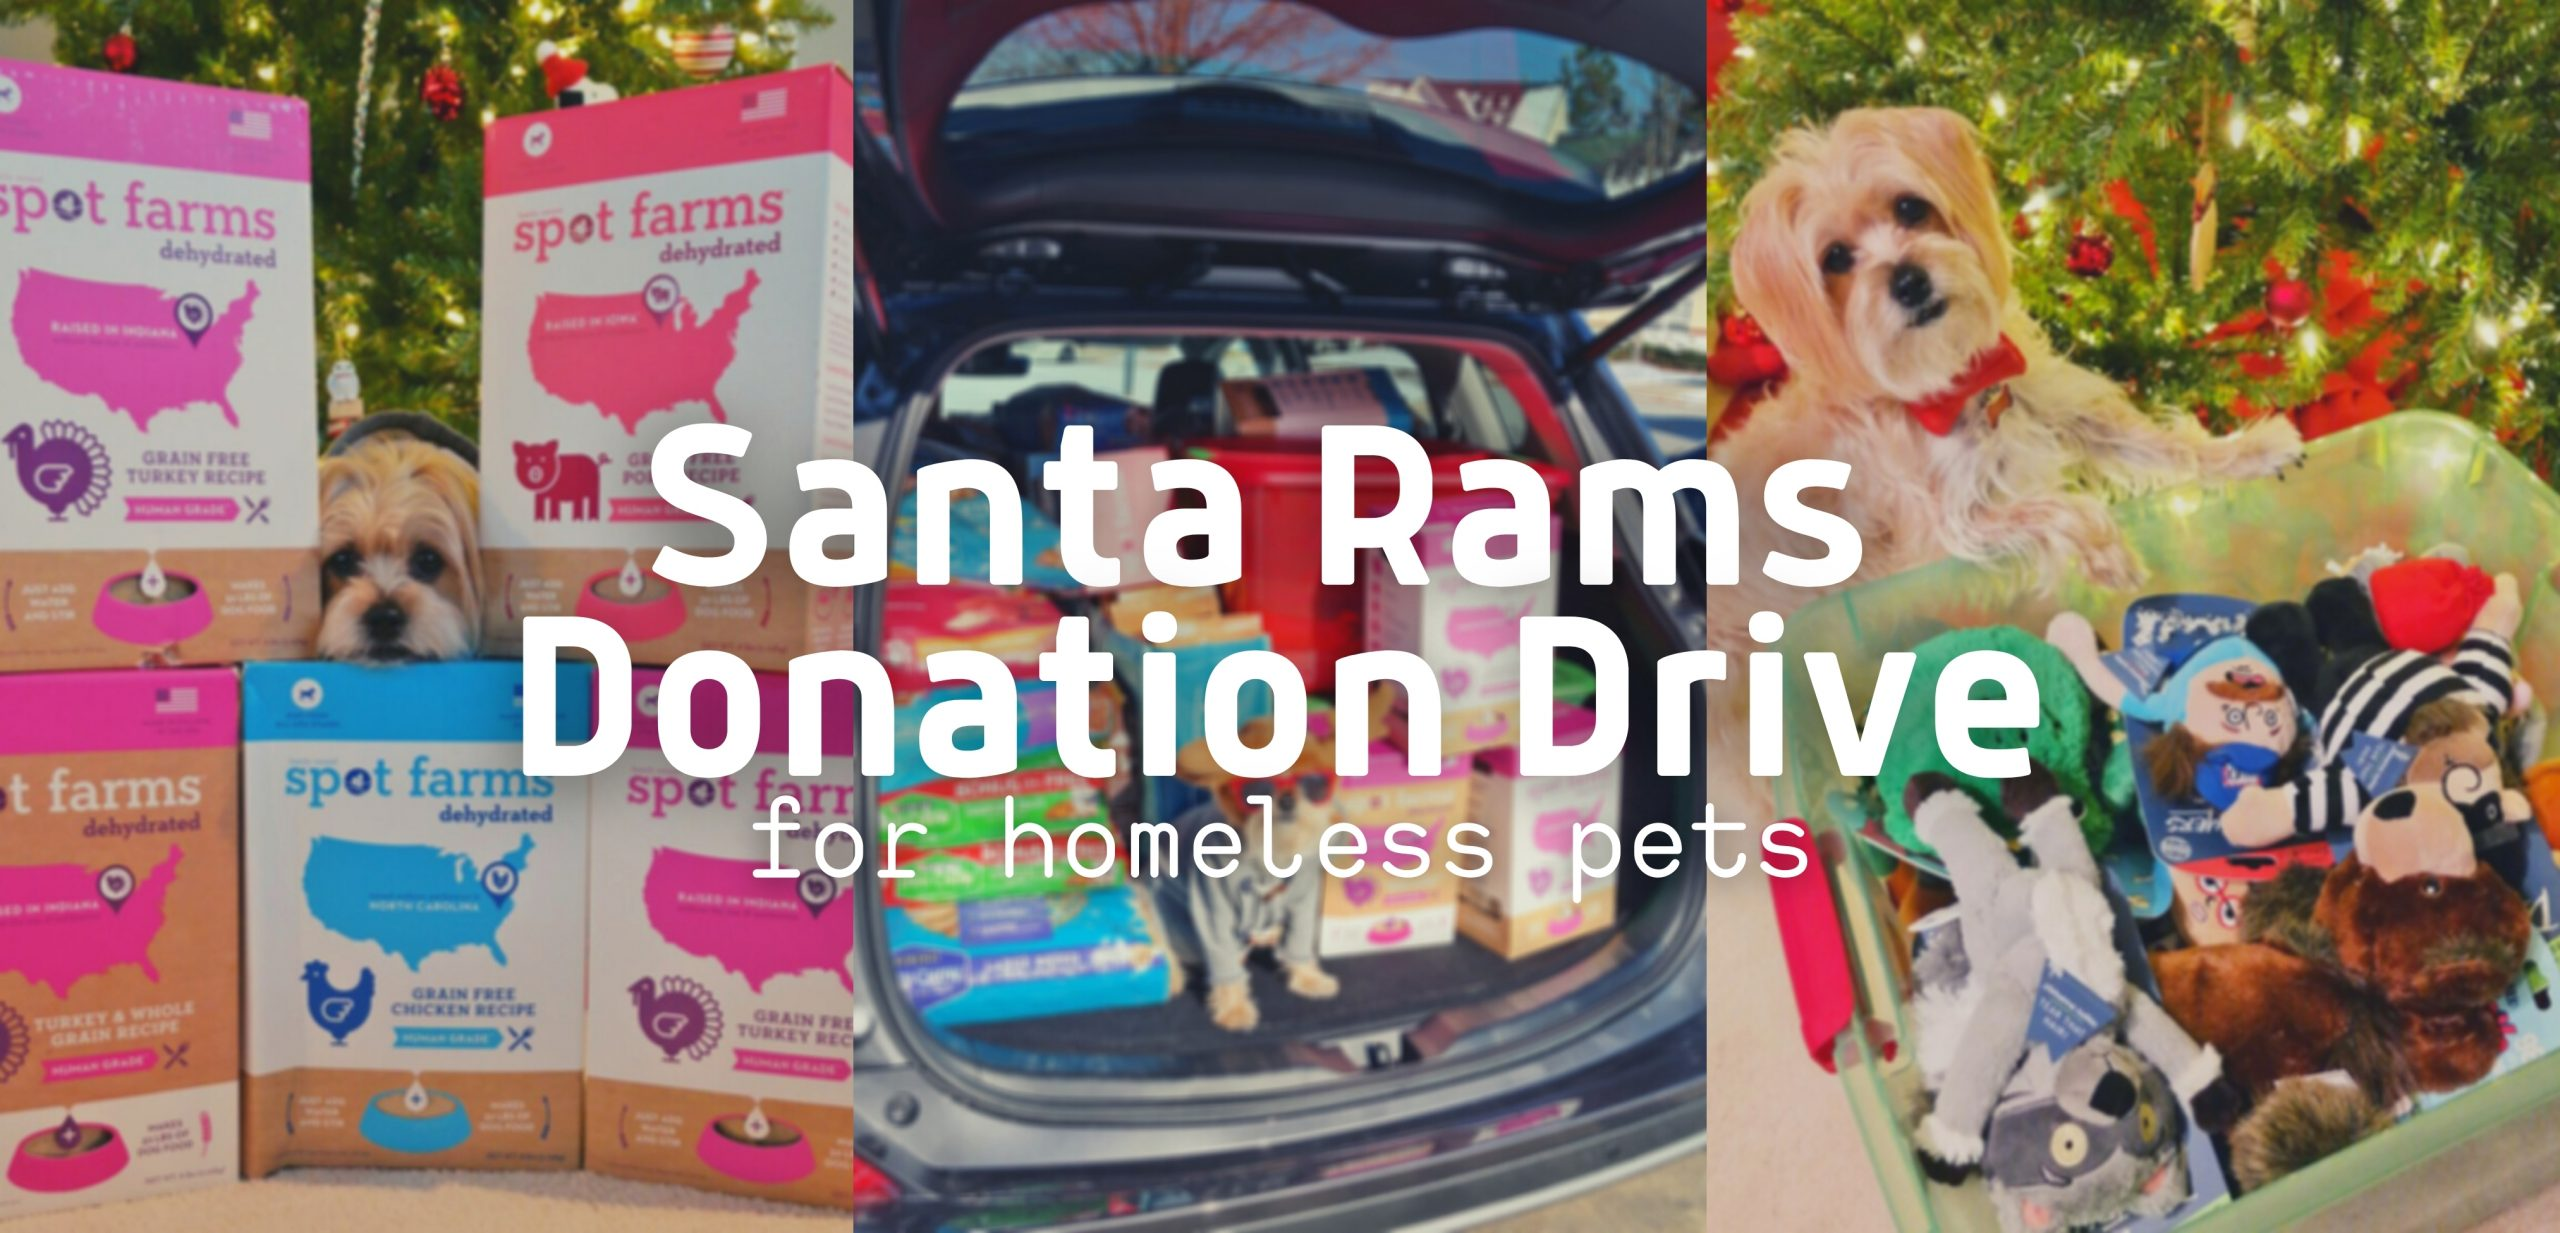 Santa Rams Donation Drive for Homeless Pets